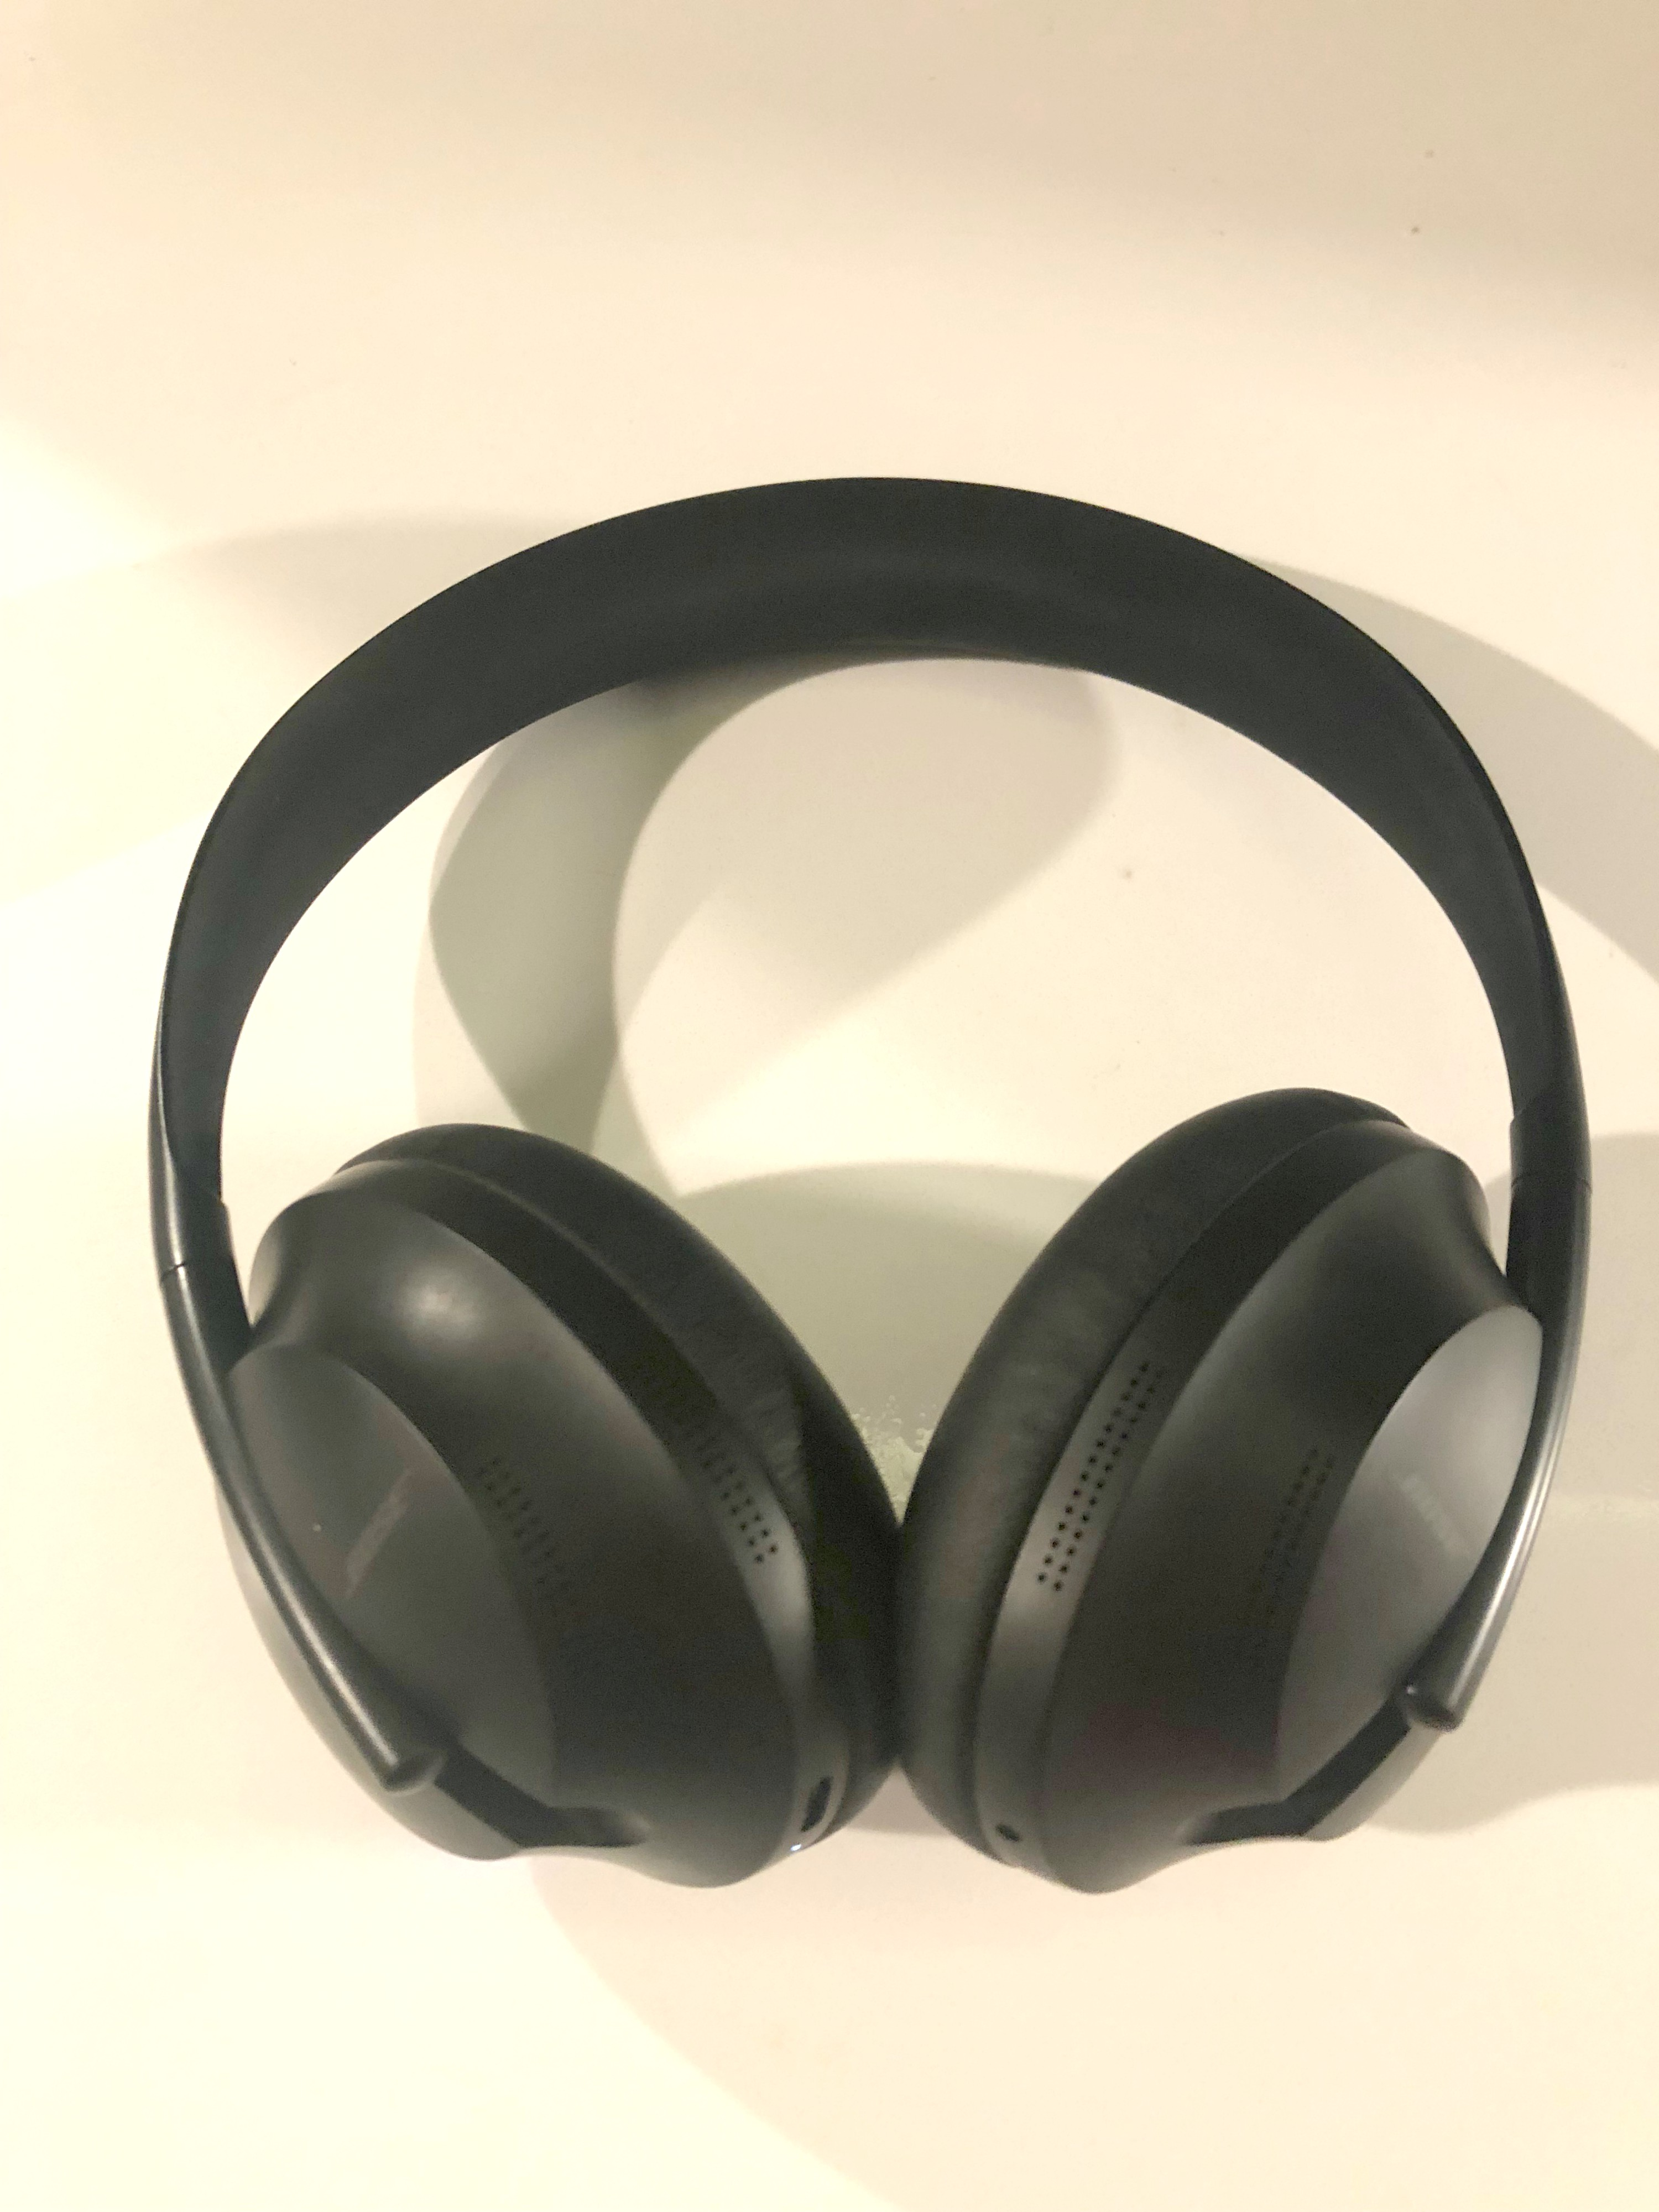 Love a Great Wireless Music Experience? Look into Bose Noise Cancelling Headphones 700